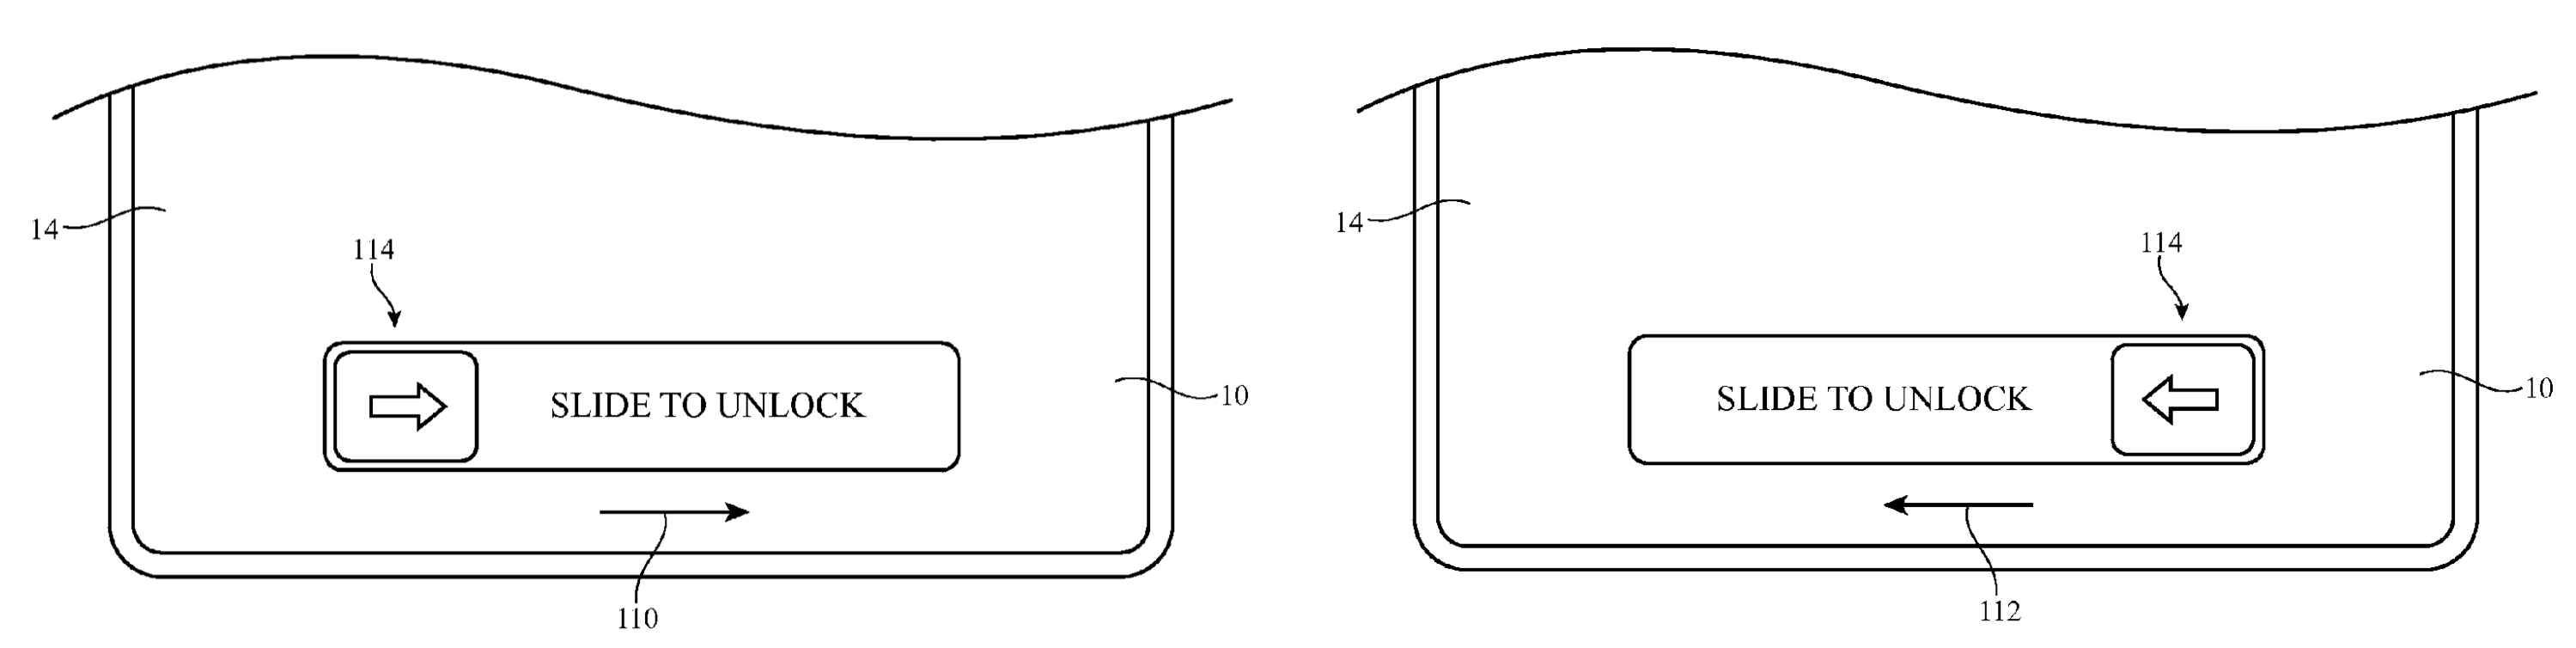 Apple patent iPhone left-handed use drawing 002